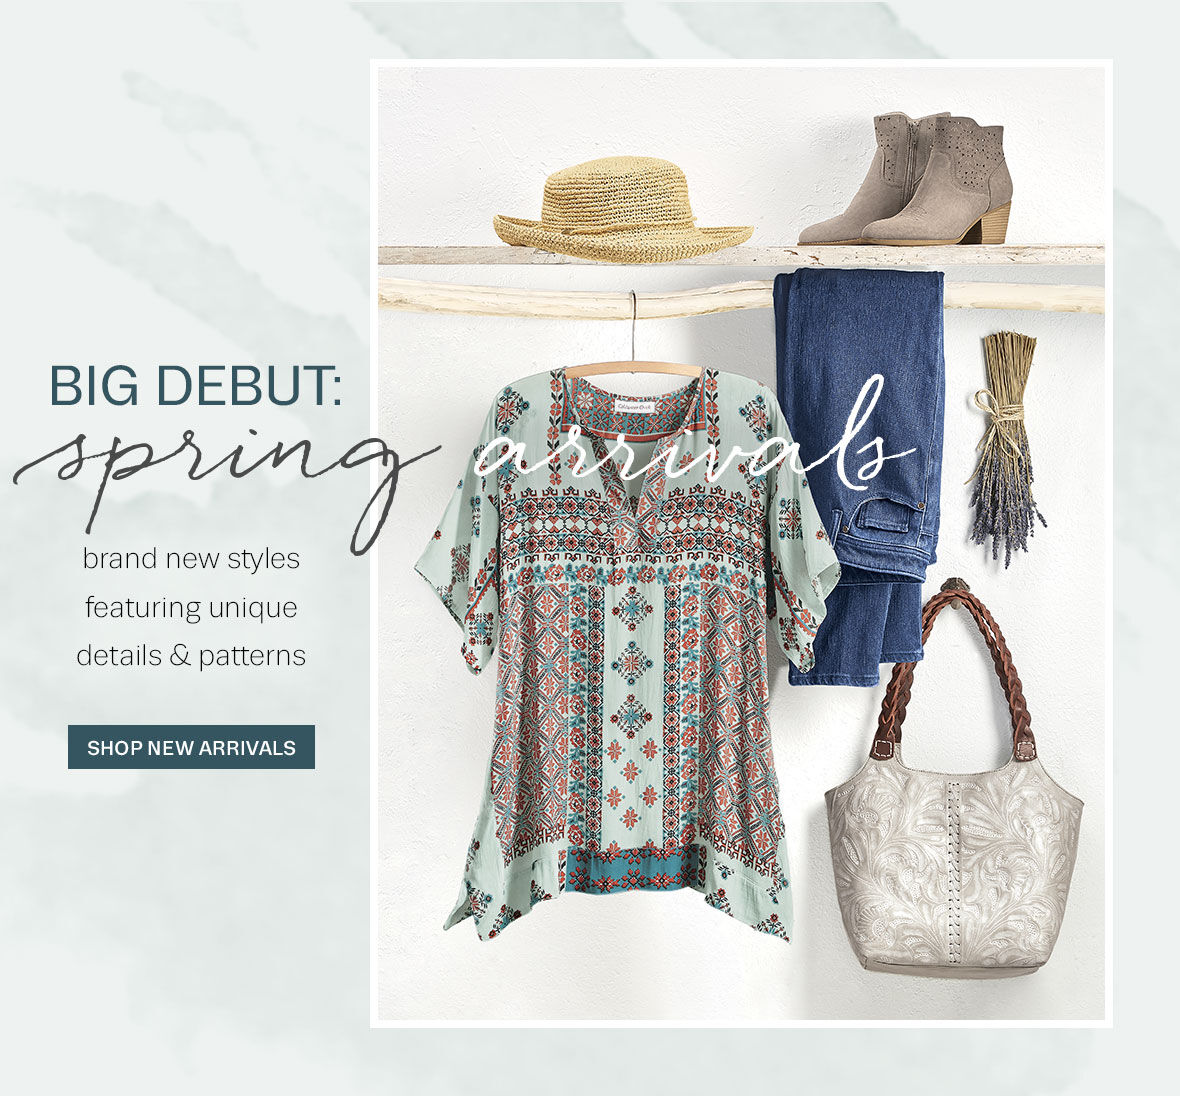 Womens Clothing Like Coldwater Creek